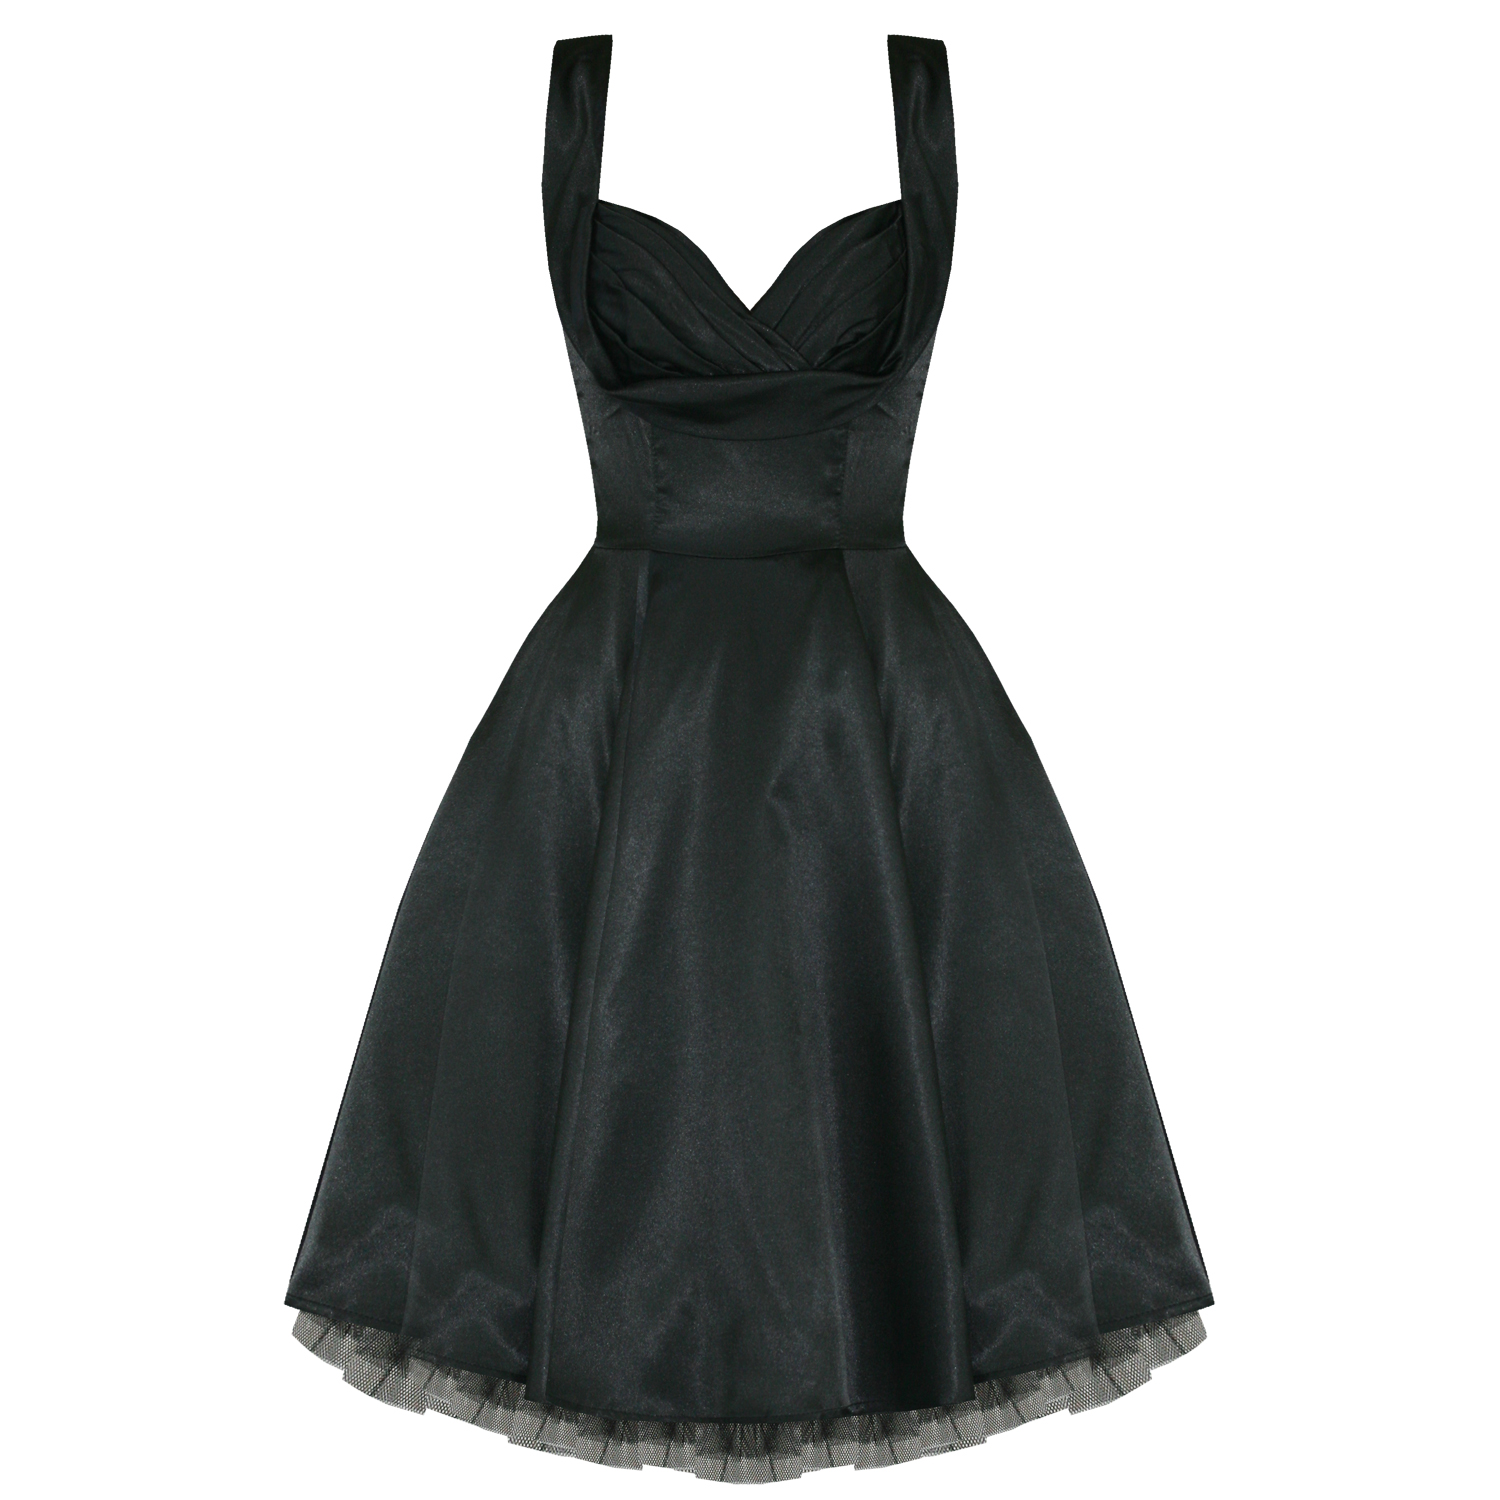 LADIES-NEW-BLACK-SATIN-VINTAGE-50S-RETRO-PINUP-PARTY-PROM-SWING-EVENING-DRESS